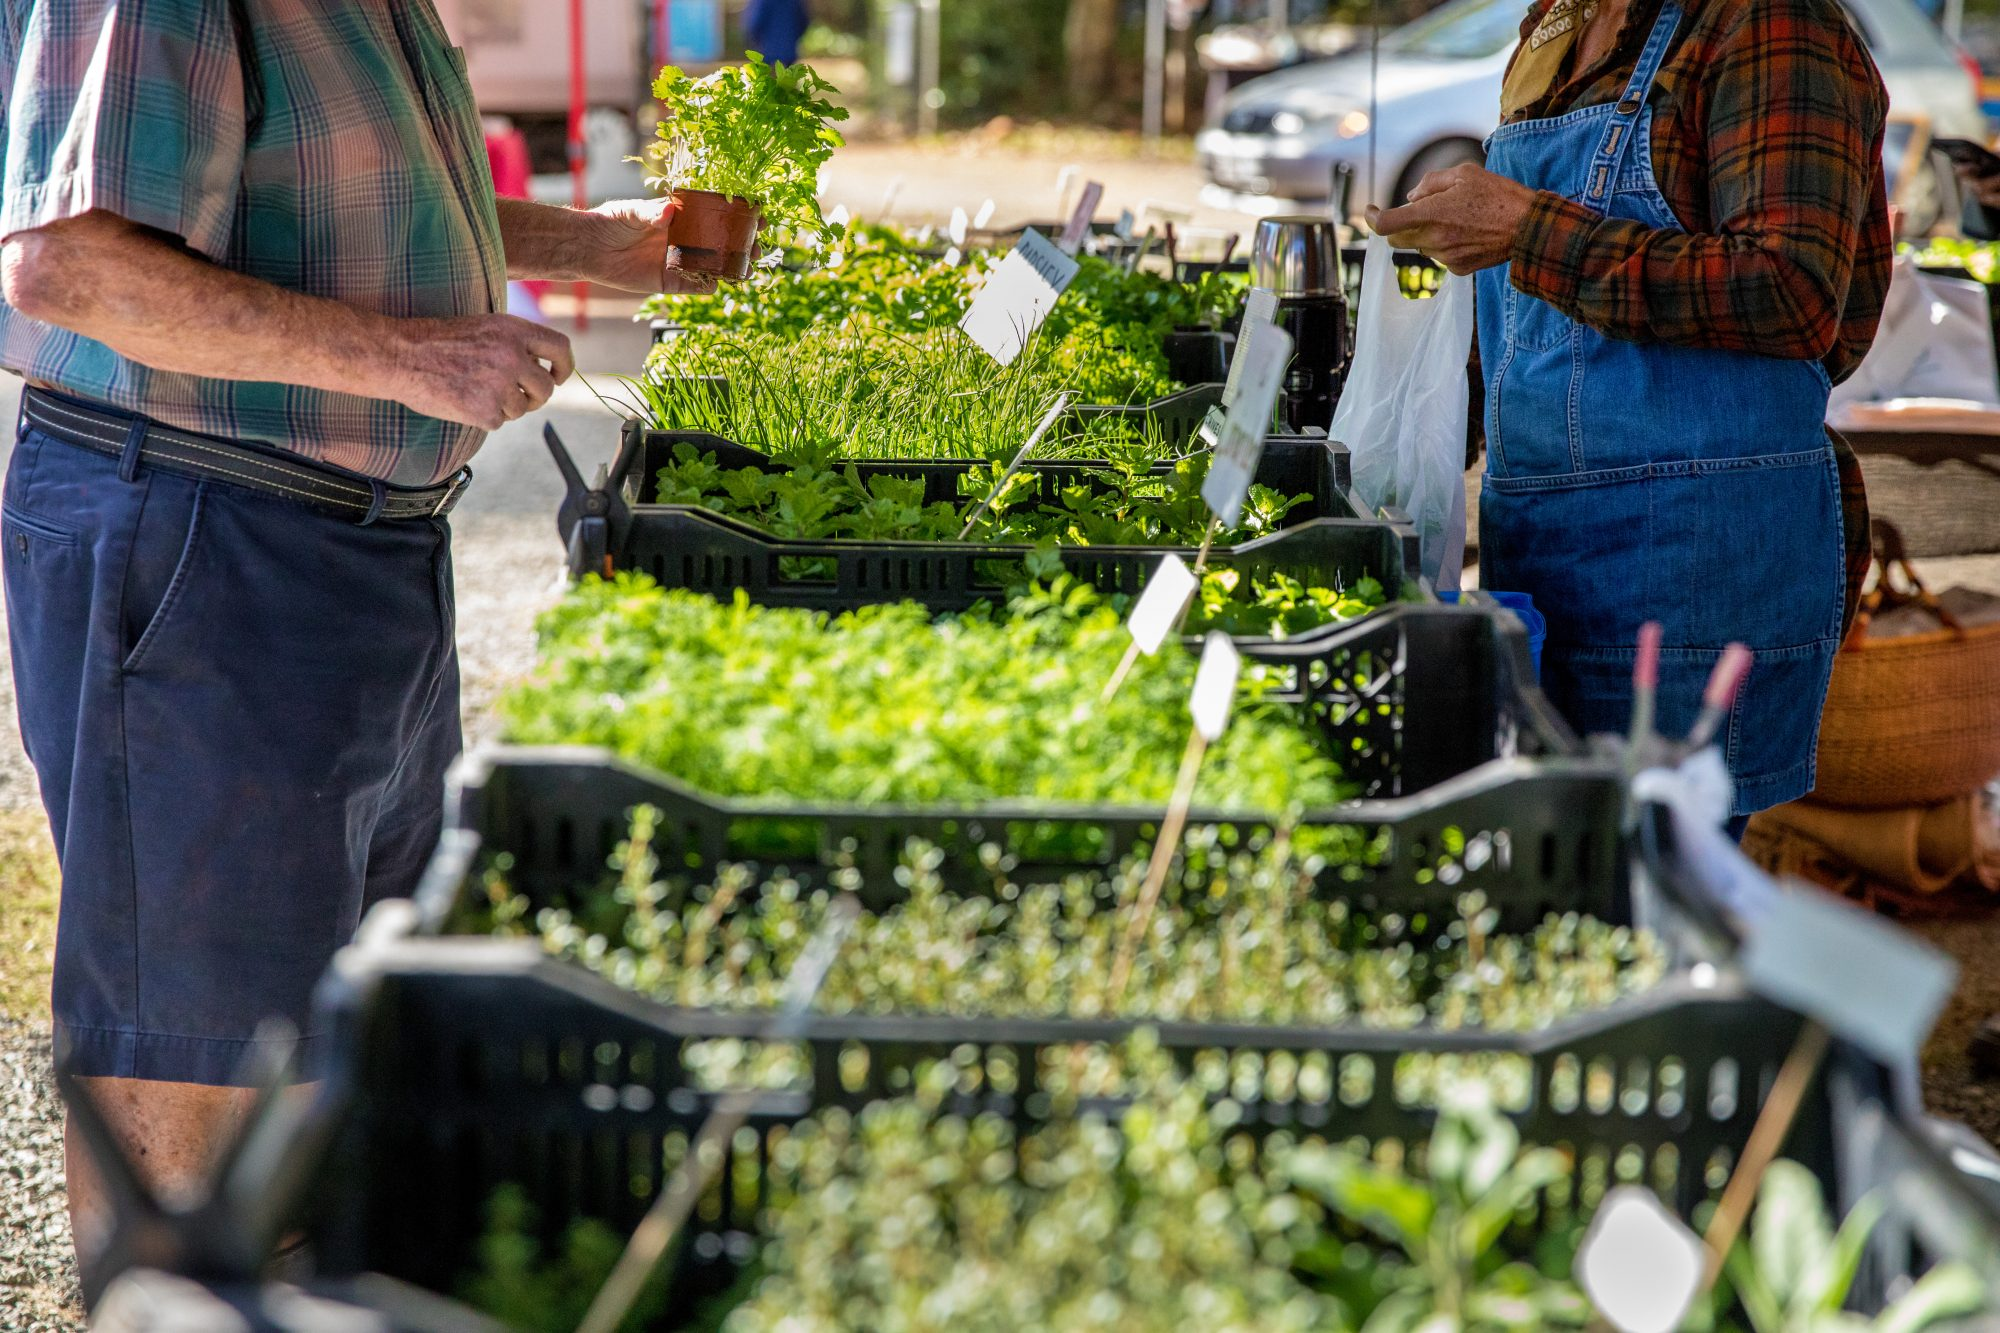 8 Rude Things You Do at the Farmers' Market, According to the Vendors Themselves